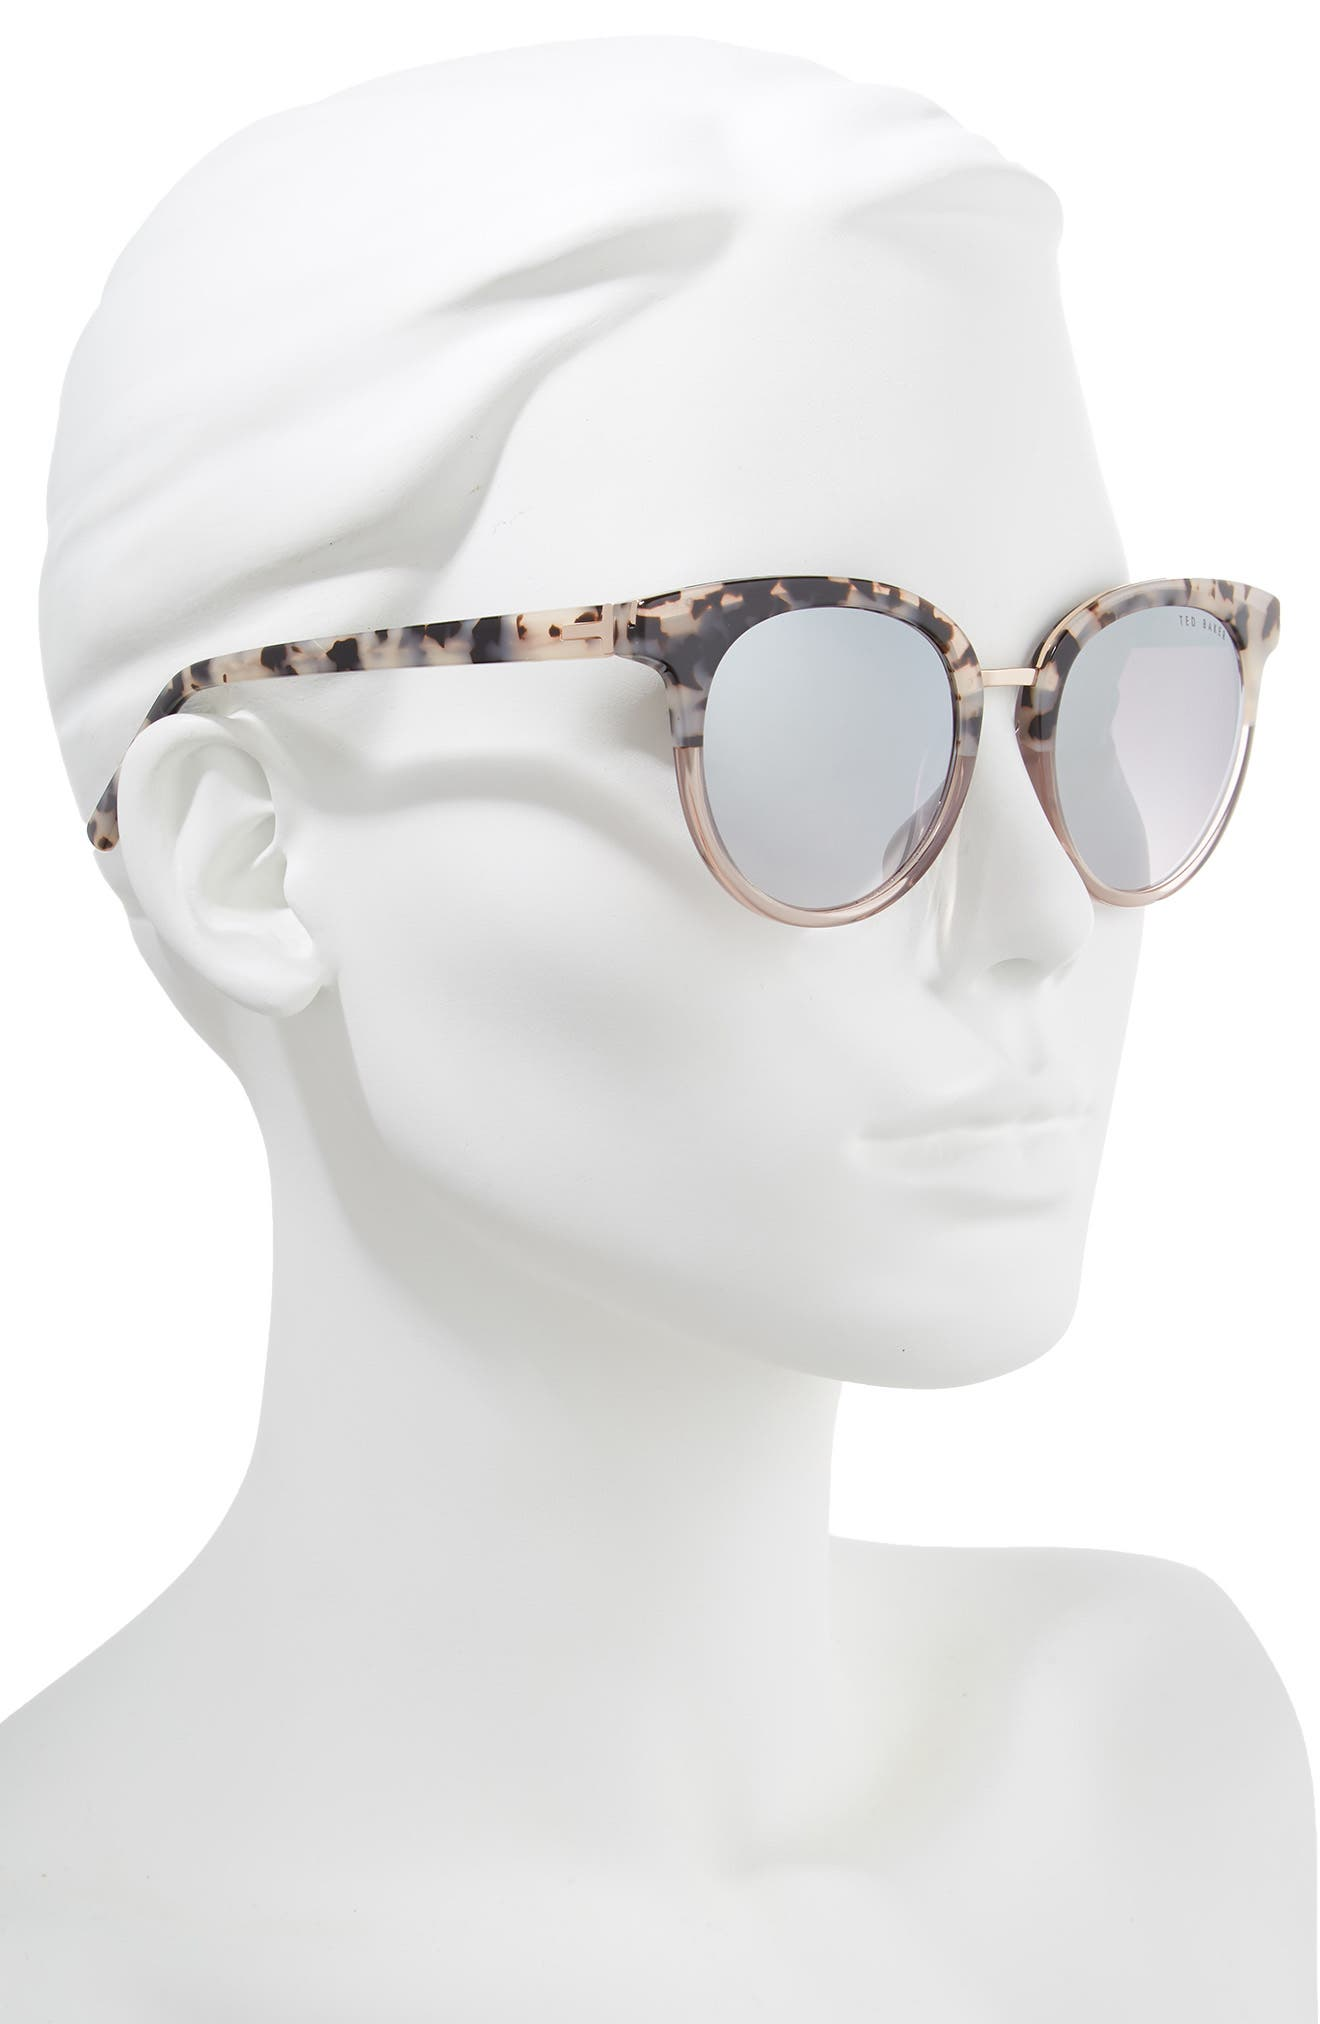 52mm Round Sunglasses,                             Alternate thumbnail 2, color,                             IVORY